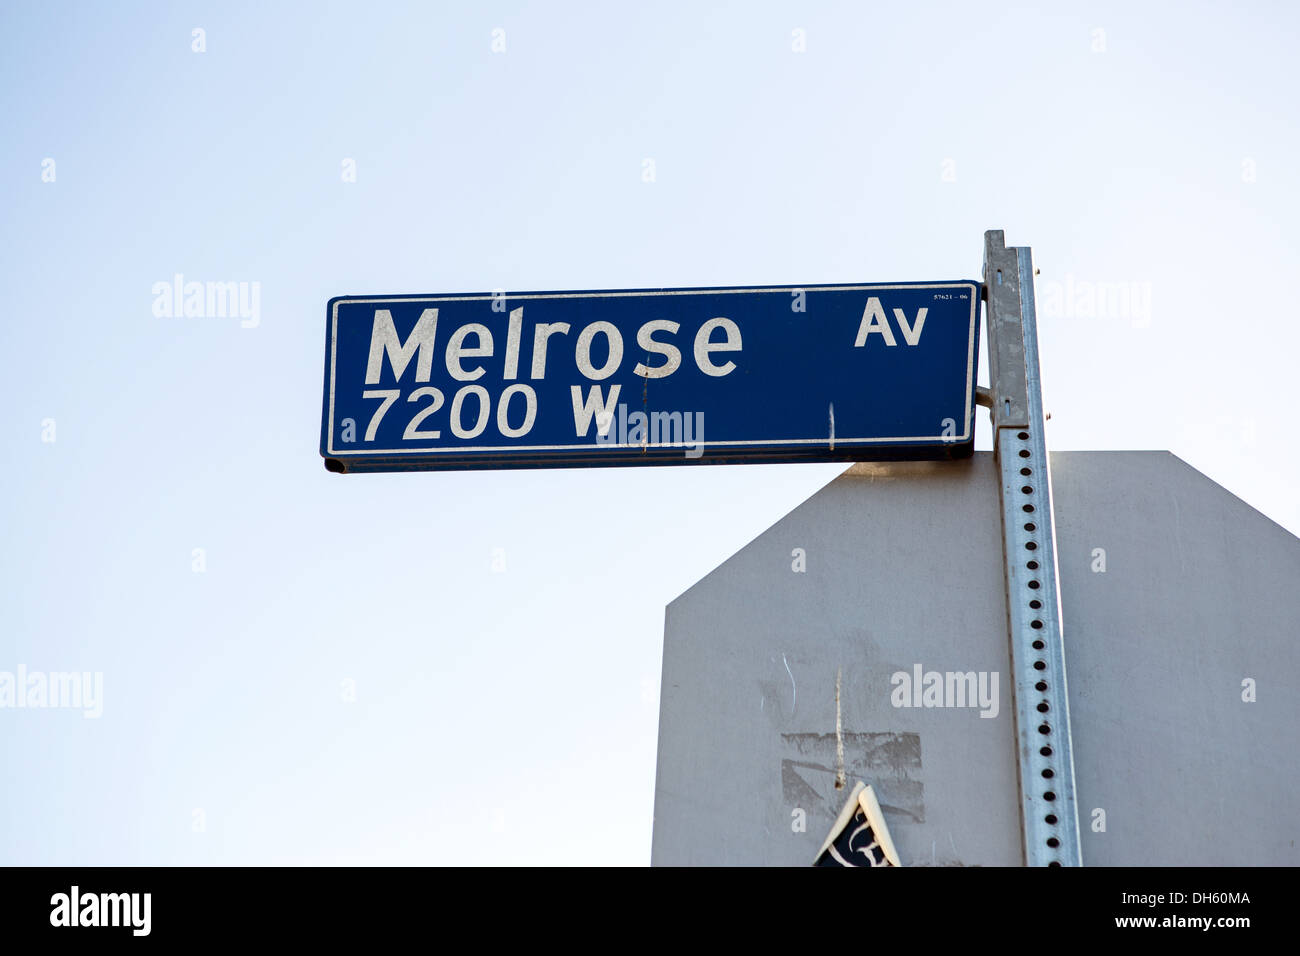 Street sign with the name Melrose avenue - Stock Image